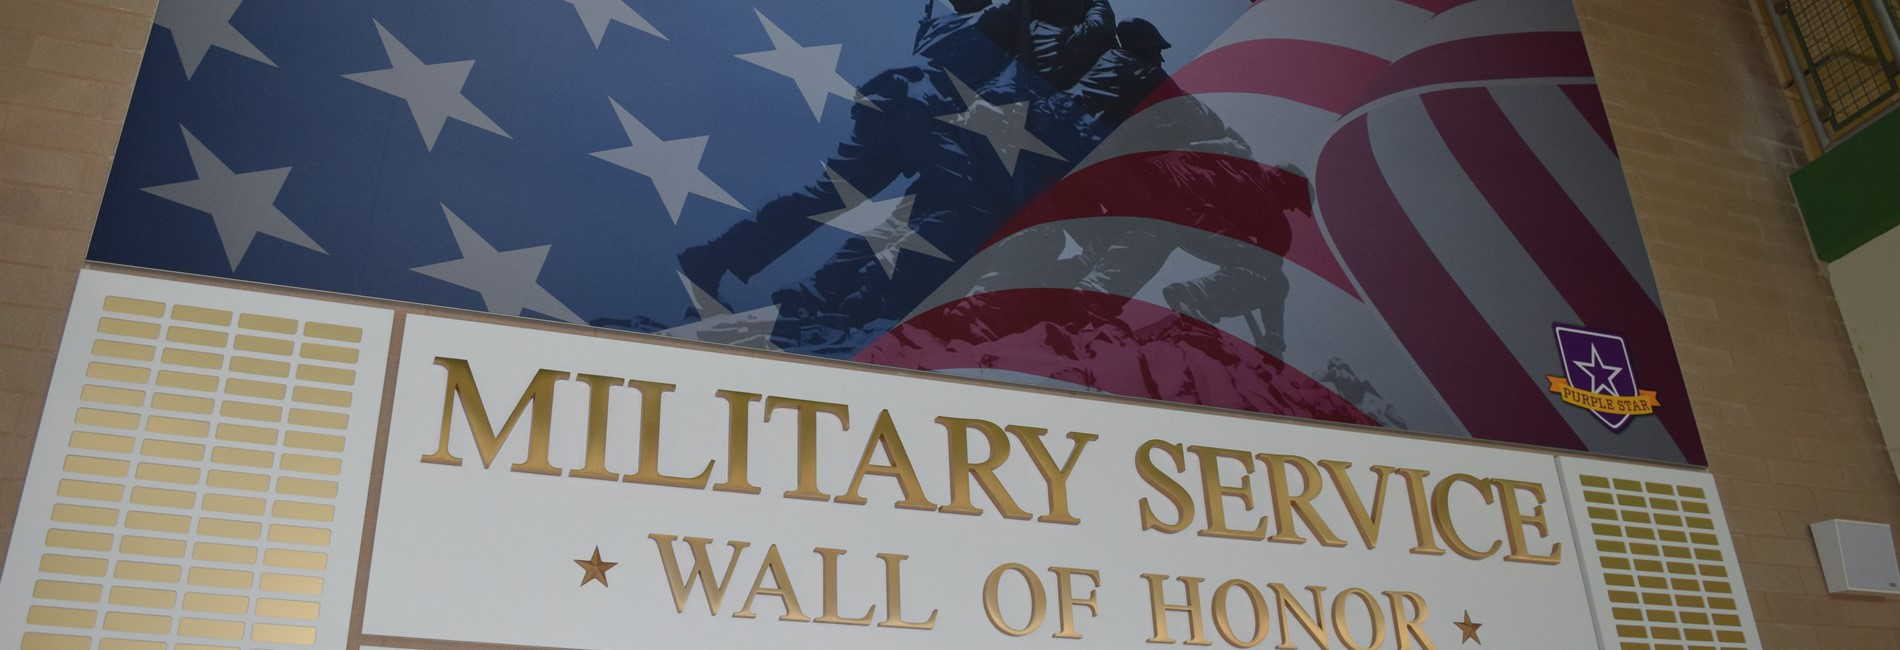 Military Wall of Honor